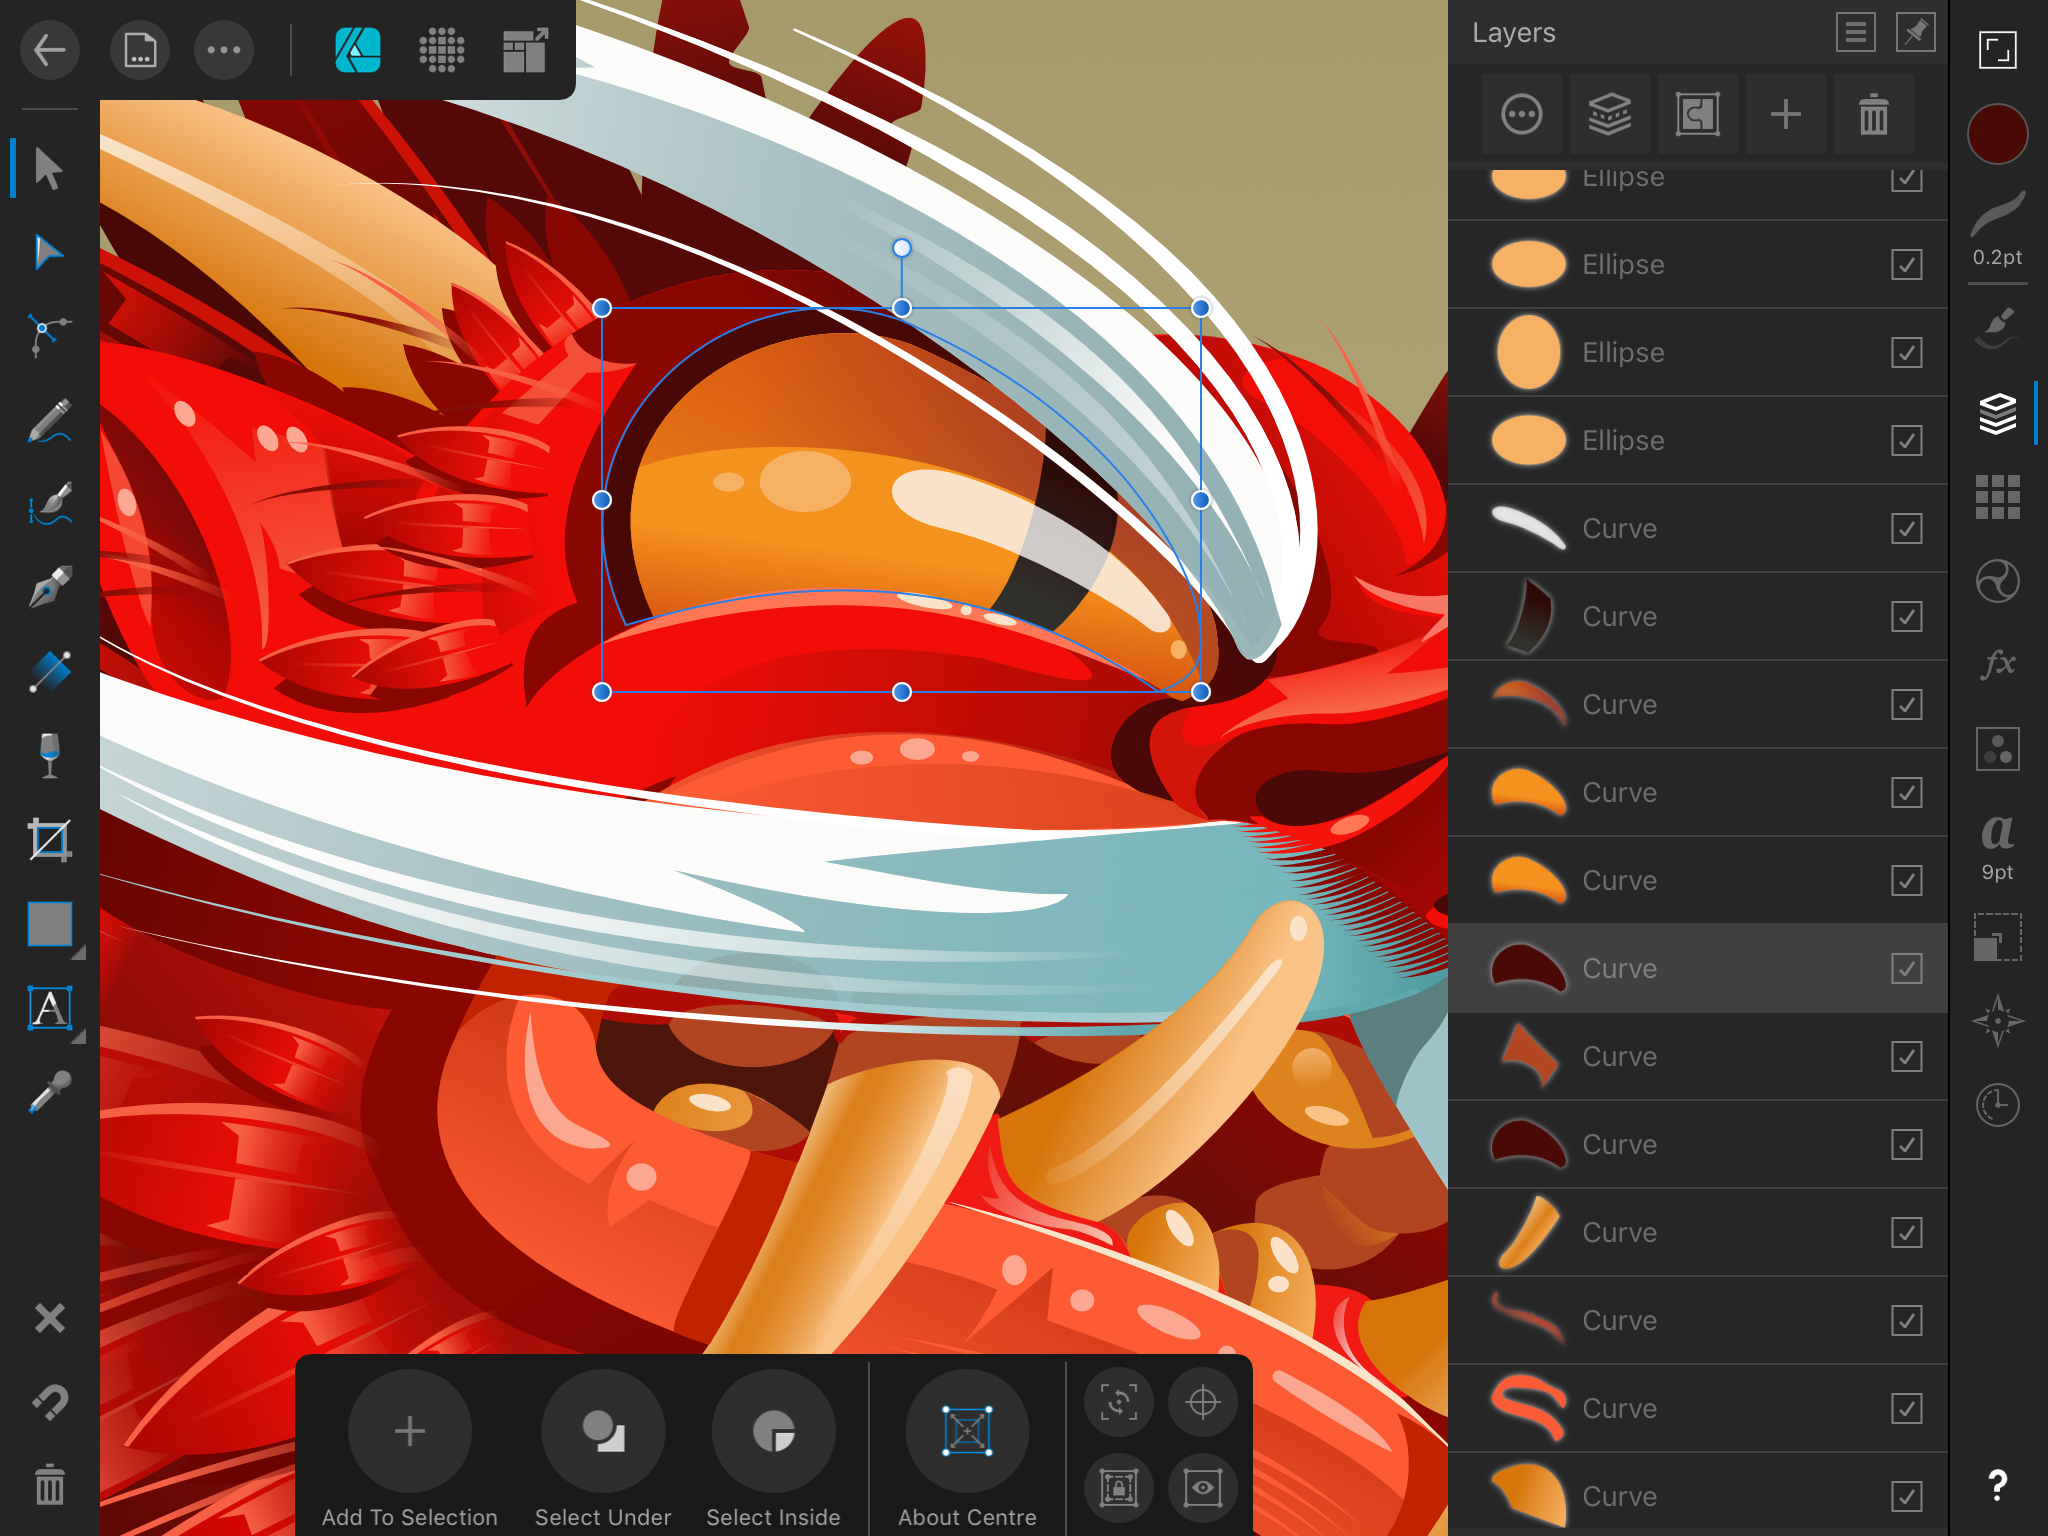 Affinity Designer for iPad review: Nearly all the power of Illustrator in an iPad app